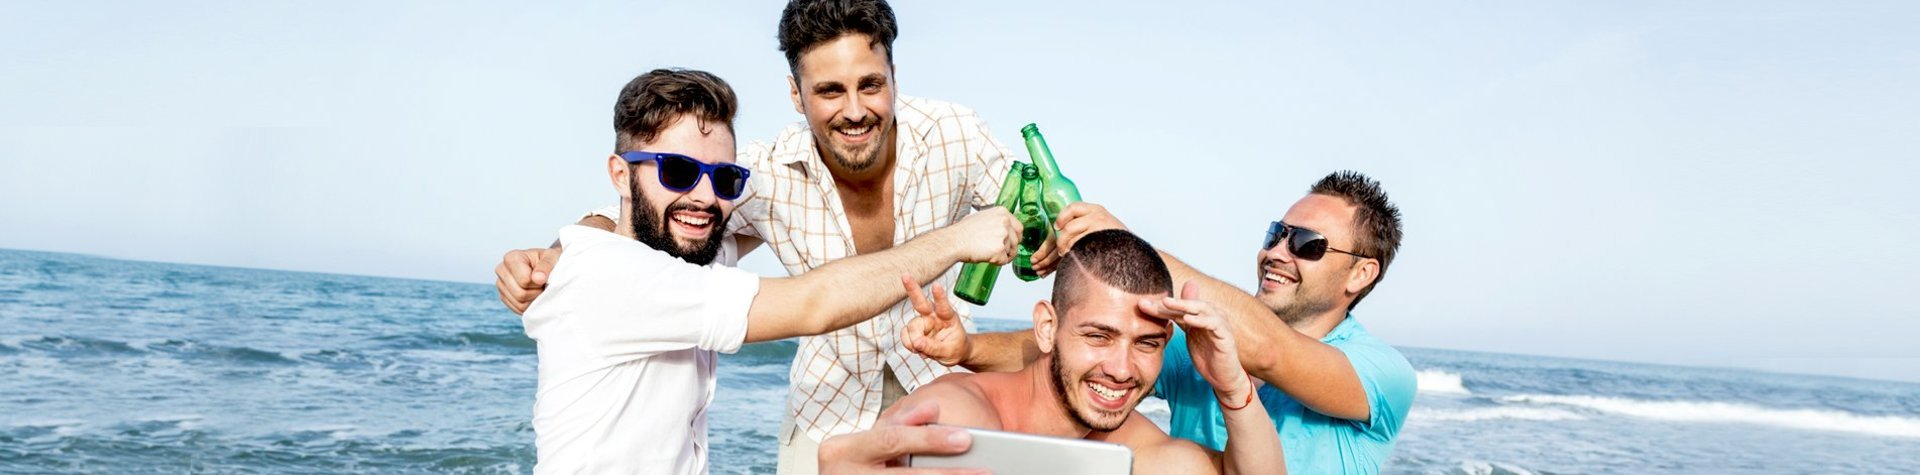 guys drinking beer on the beach